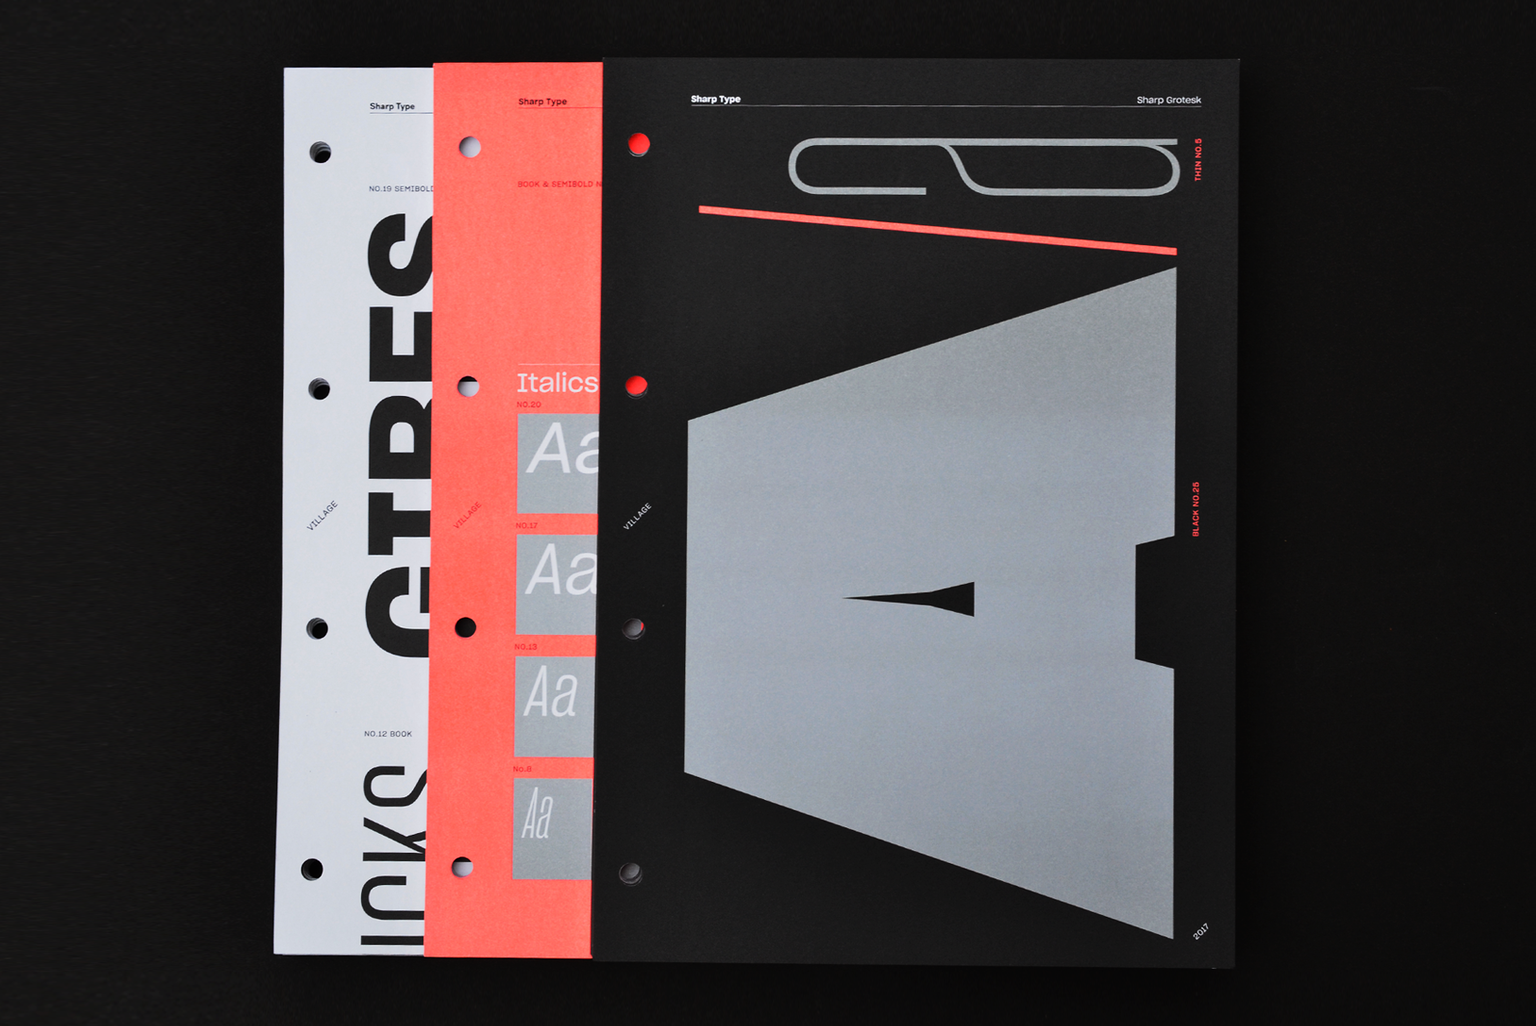 Vllg sharptype sharpgrotesk pages 1